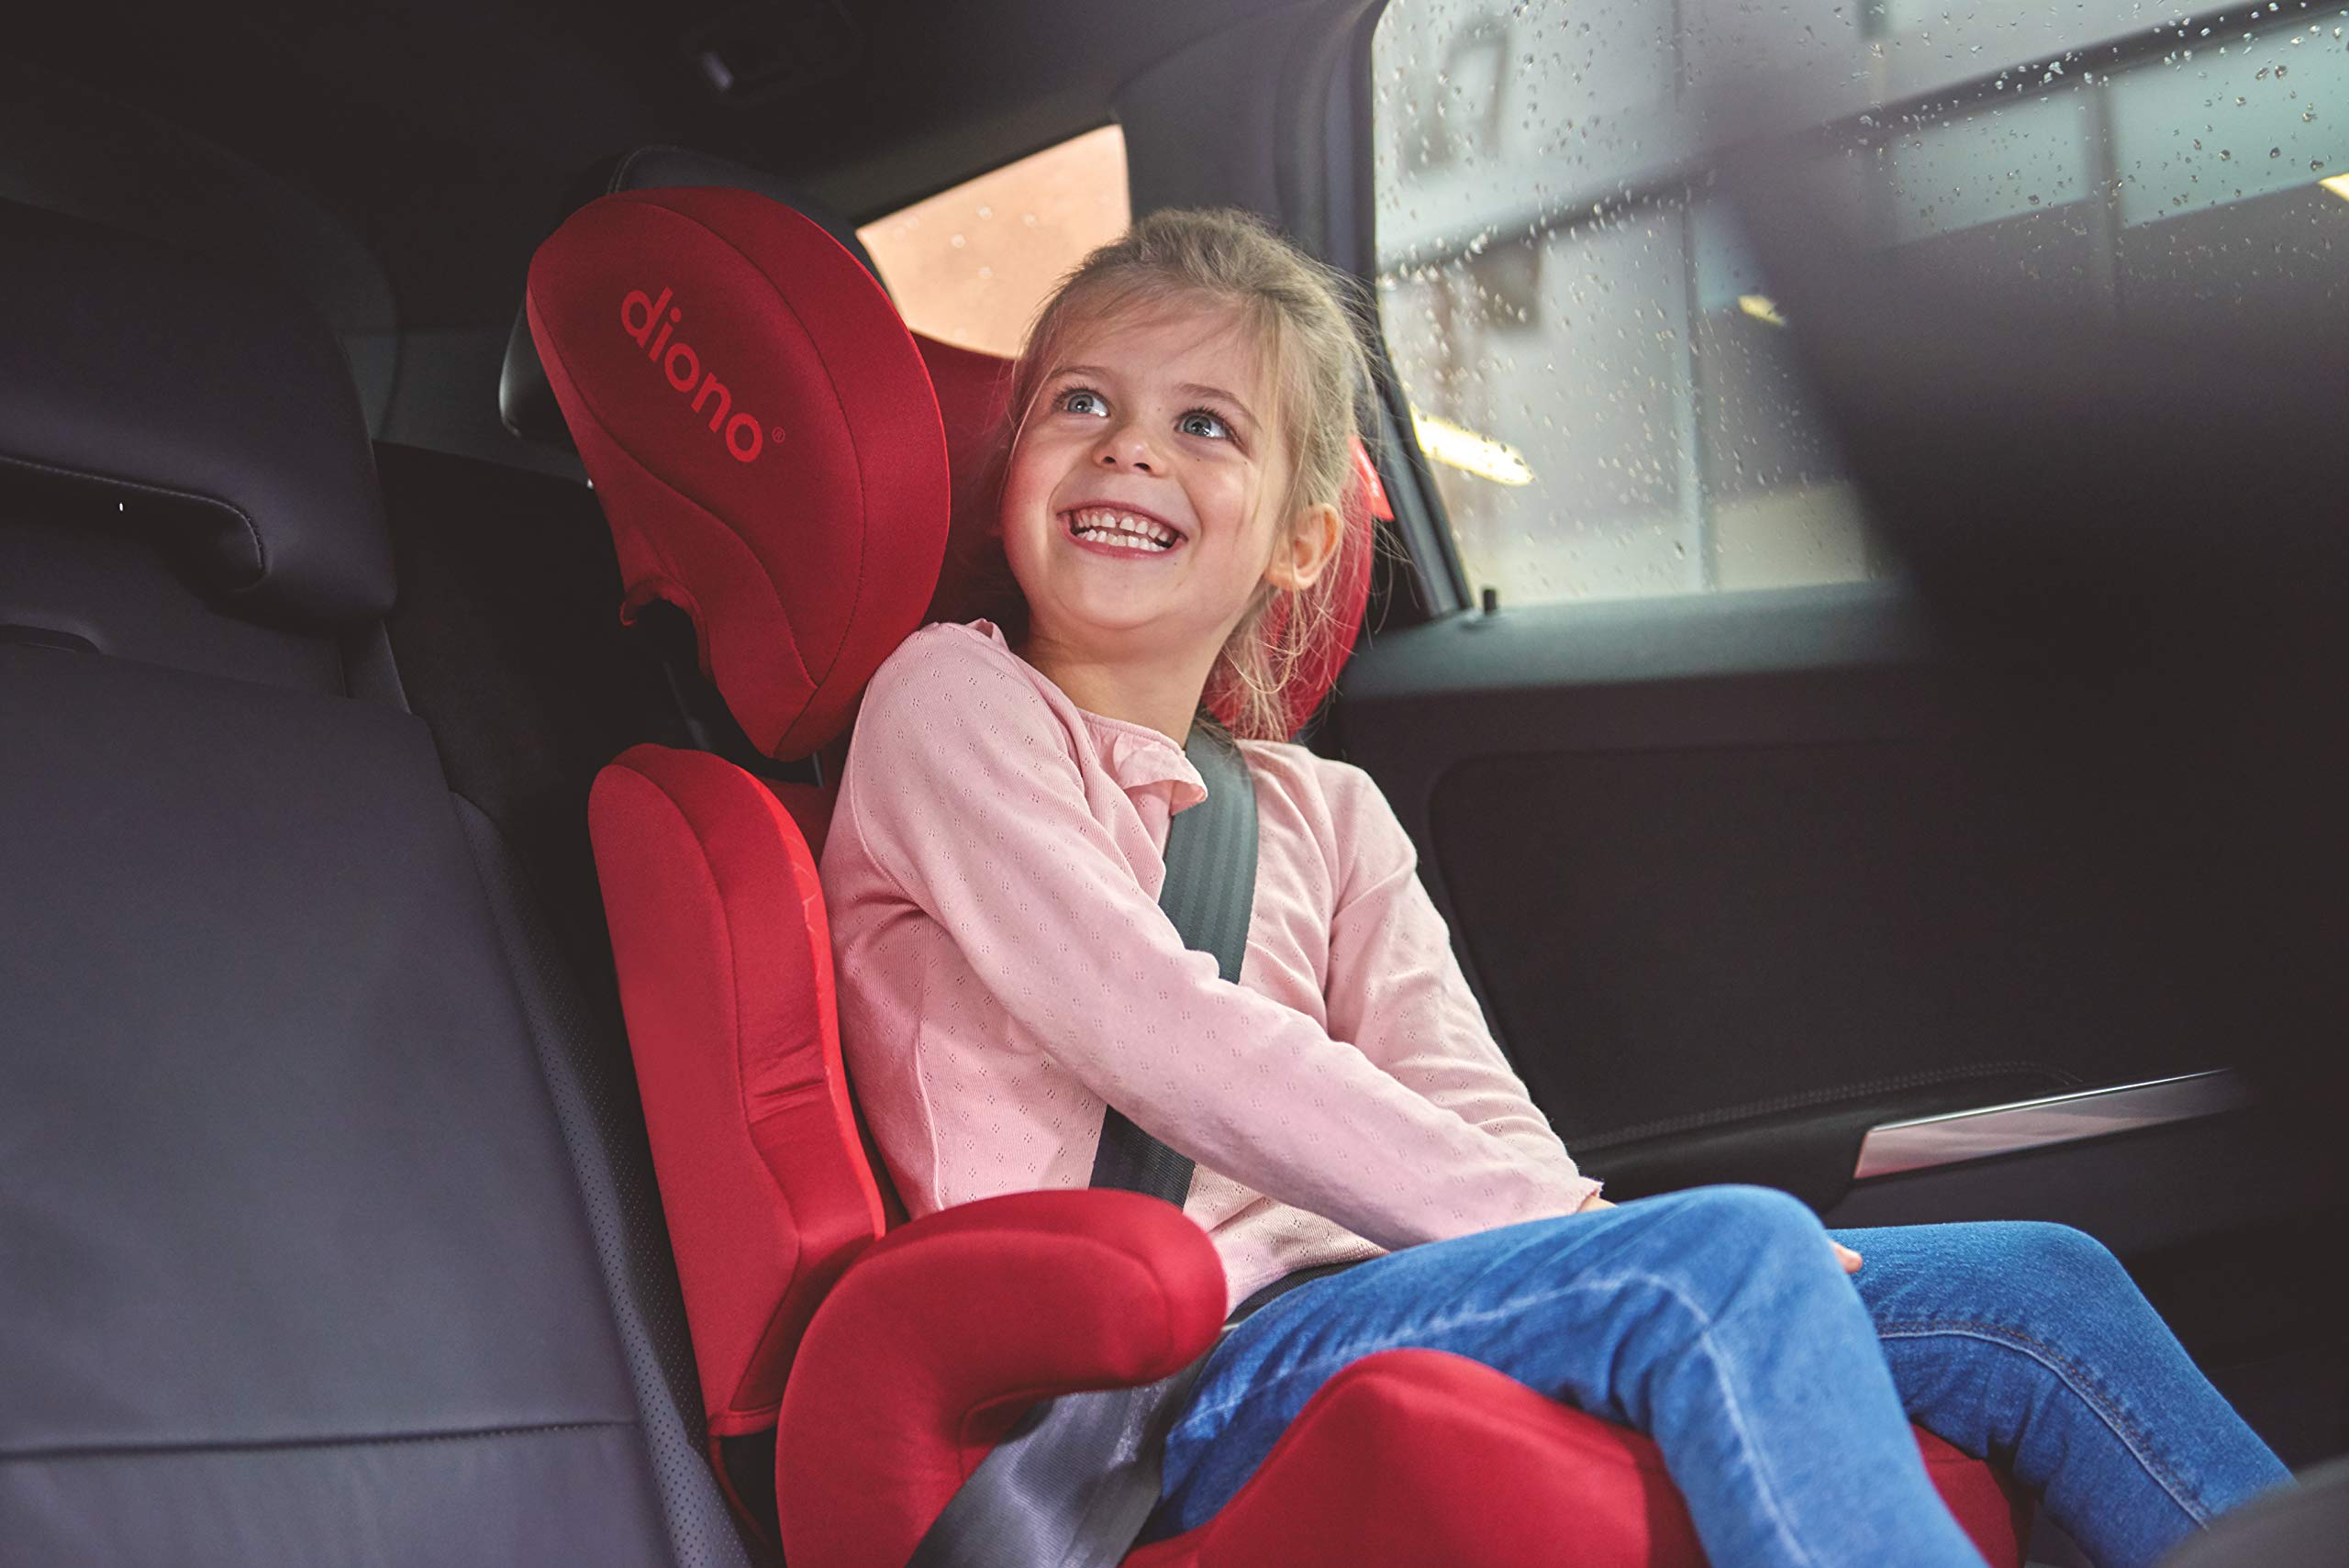 Diono Everett NXT Fix Highback Booster Seat - 7 Position Adjustable Headrest, Group 2/3 (15 - 36 kg and Up to 160 cm In Height), Approx. 4-12 Years, Plum Diono Designed to grow: group 2/3 car seat is suitable from 18kg - 50kg, approx. 4 to 12 years old. The 7-position adjustable headrest can be altered using the handle on the back of the seat Superior safety: cushioned side impact protection has been engineered and tested to the highest standards. The ergonomic design includes extra padding to provide comfort and security as a child grows Universal connectivity: parents can install the seat using the vehicle seatbelt or use the integrated rigid latch connectors that anchor the seat to the car allowing the child to buckle themselves in 10